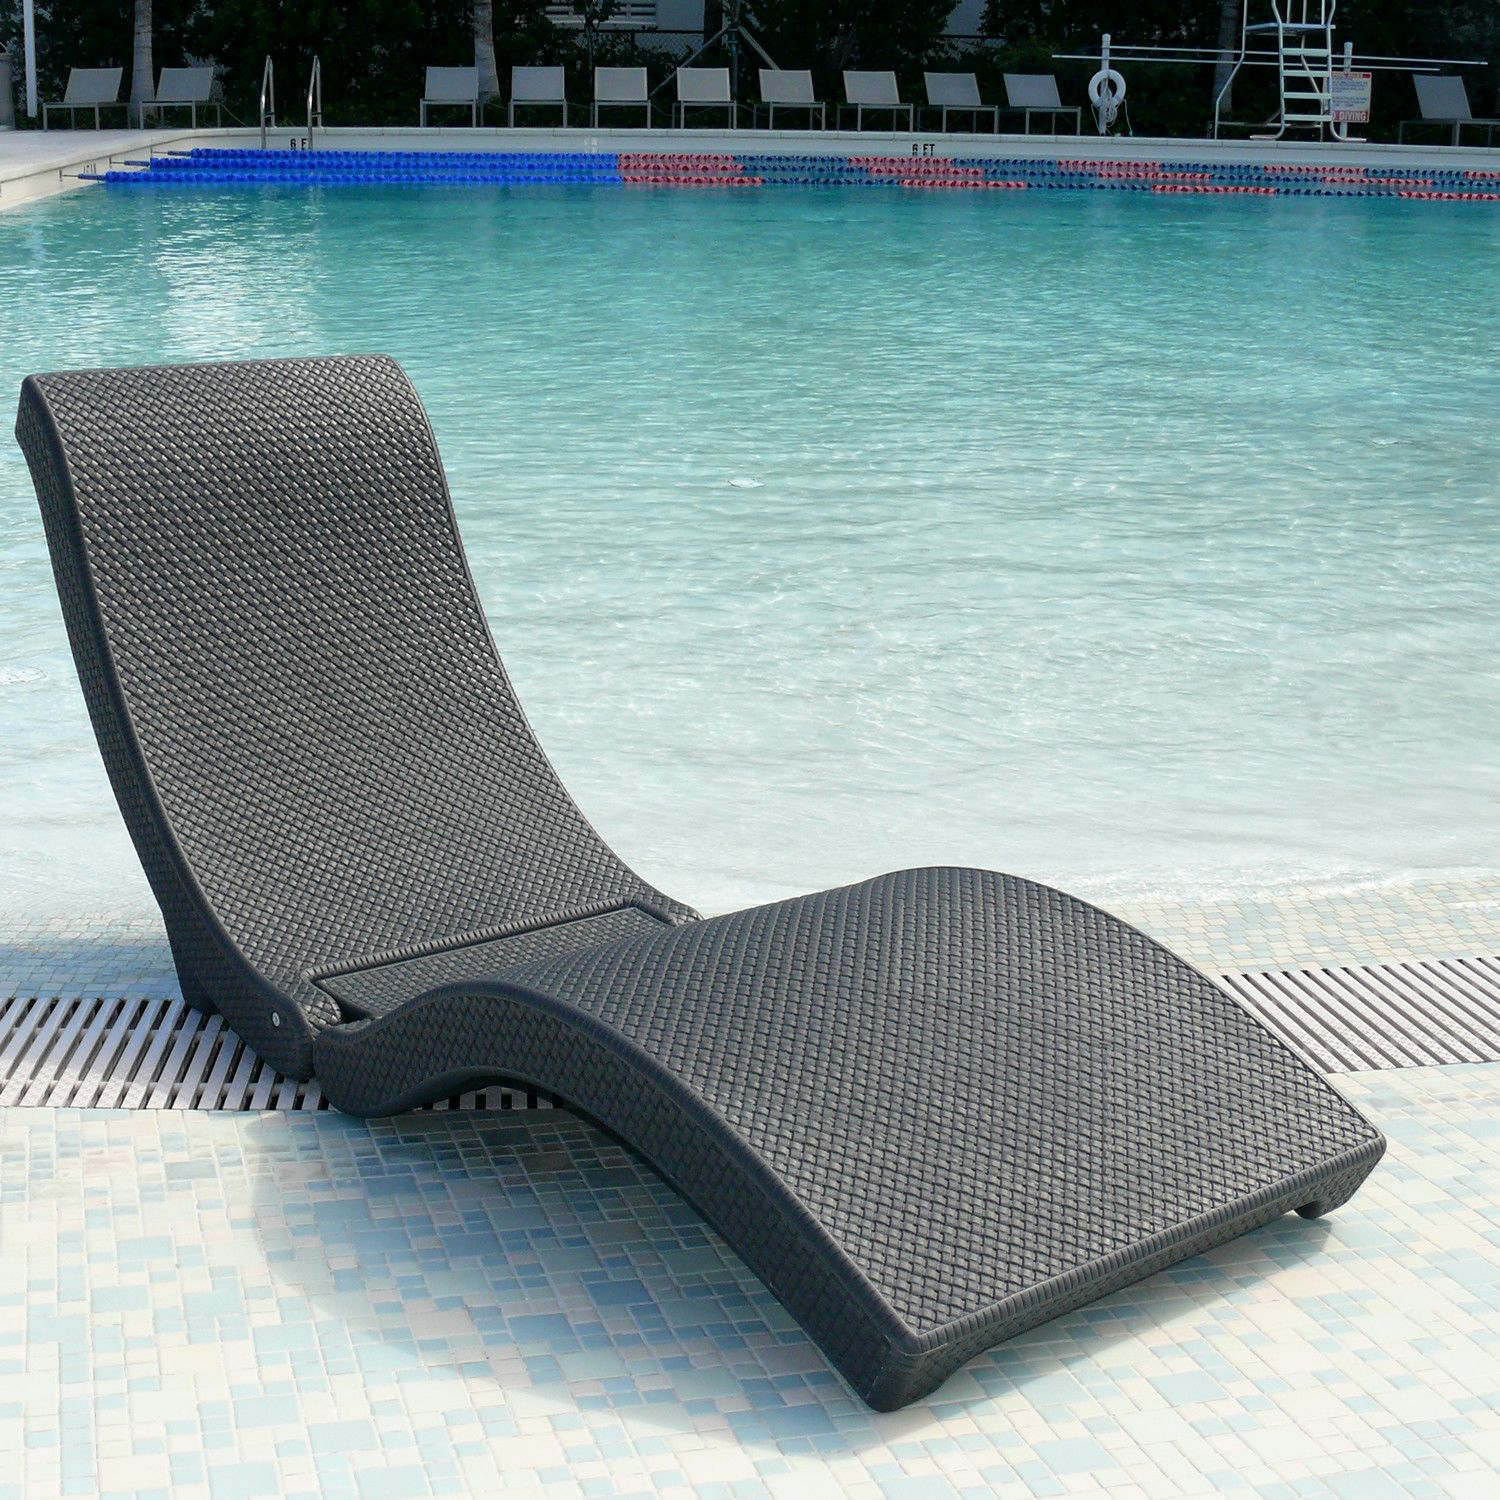 Best Water In Pool Chaise Lounge Chairs Pool Chaise Pool 400 x 300